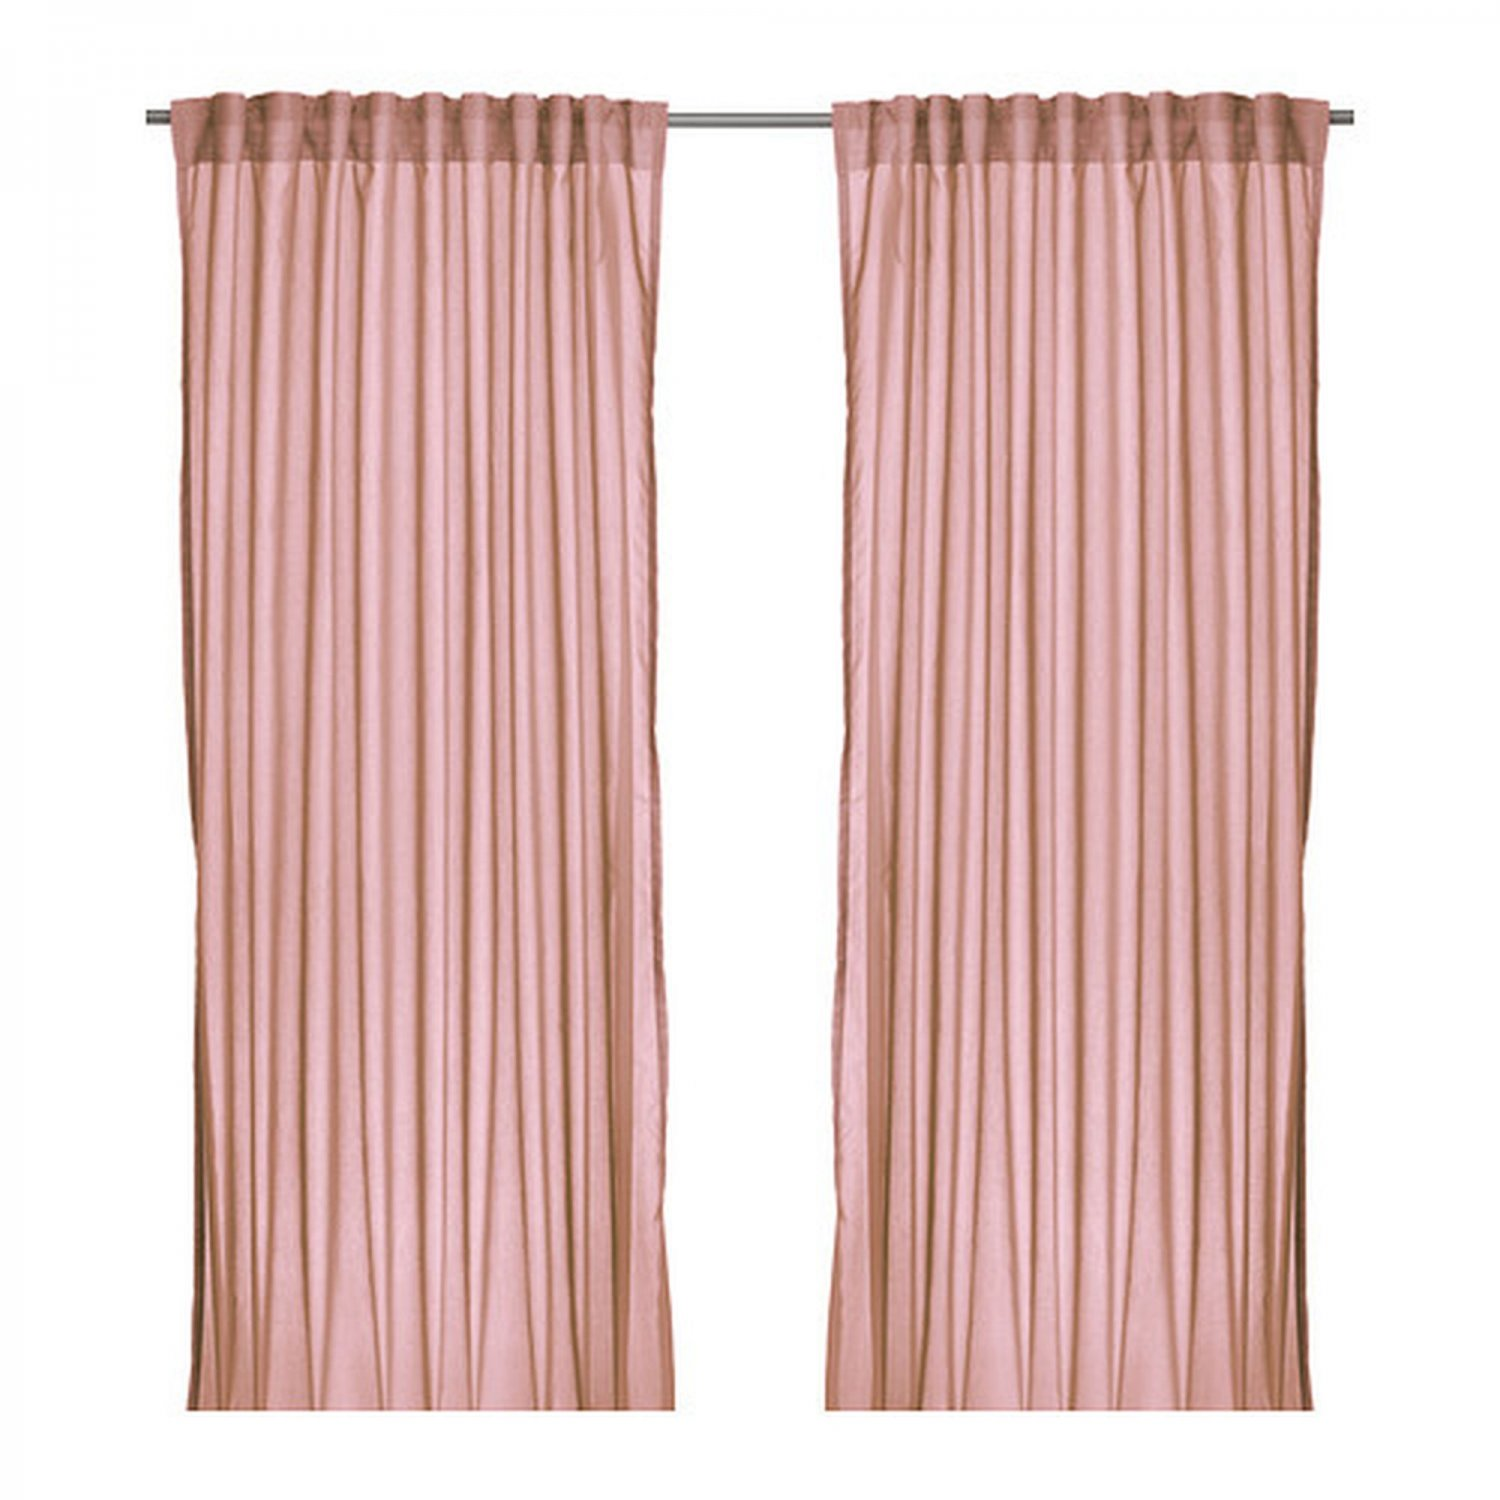 Ikea S Hooks Ikea Vivan Curtains Drapes Pink 2 Panels Pale Shell Blush